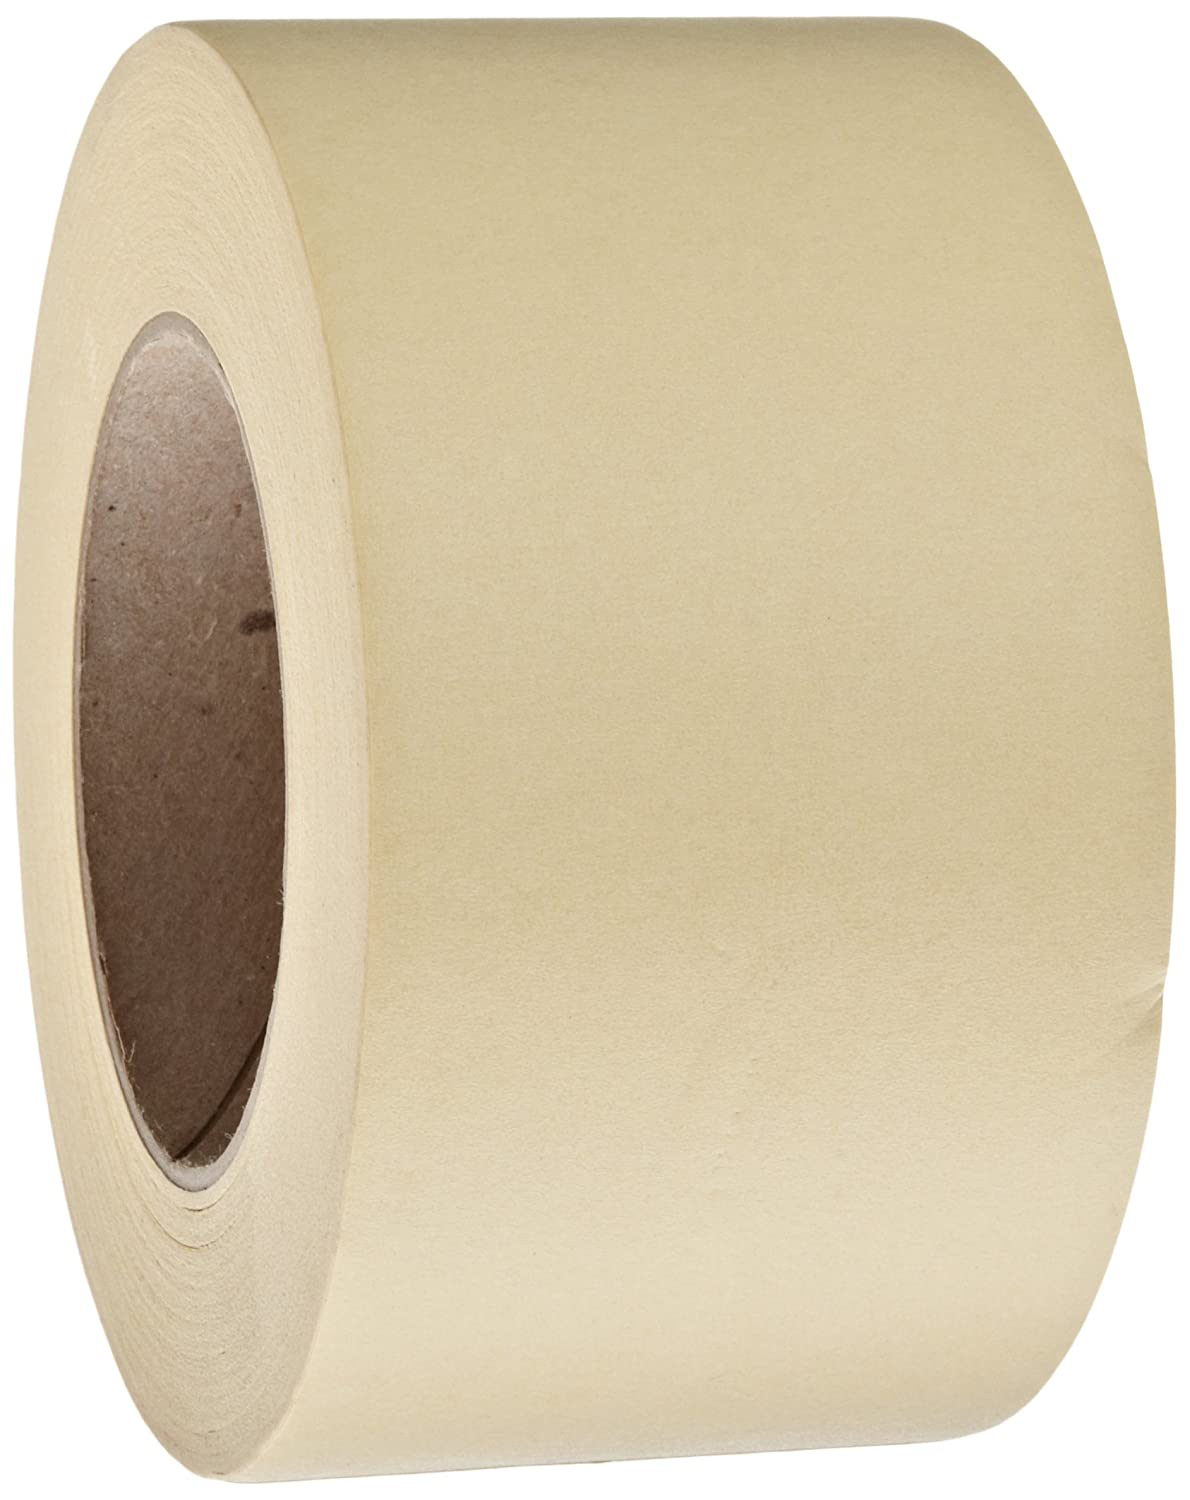 """Solder Wave Masking Tape, 3"""" Core, 500 Degree F Performance Temperature, 6 mil Thick, 60 yds Length x 3"""" Width, Beige"""